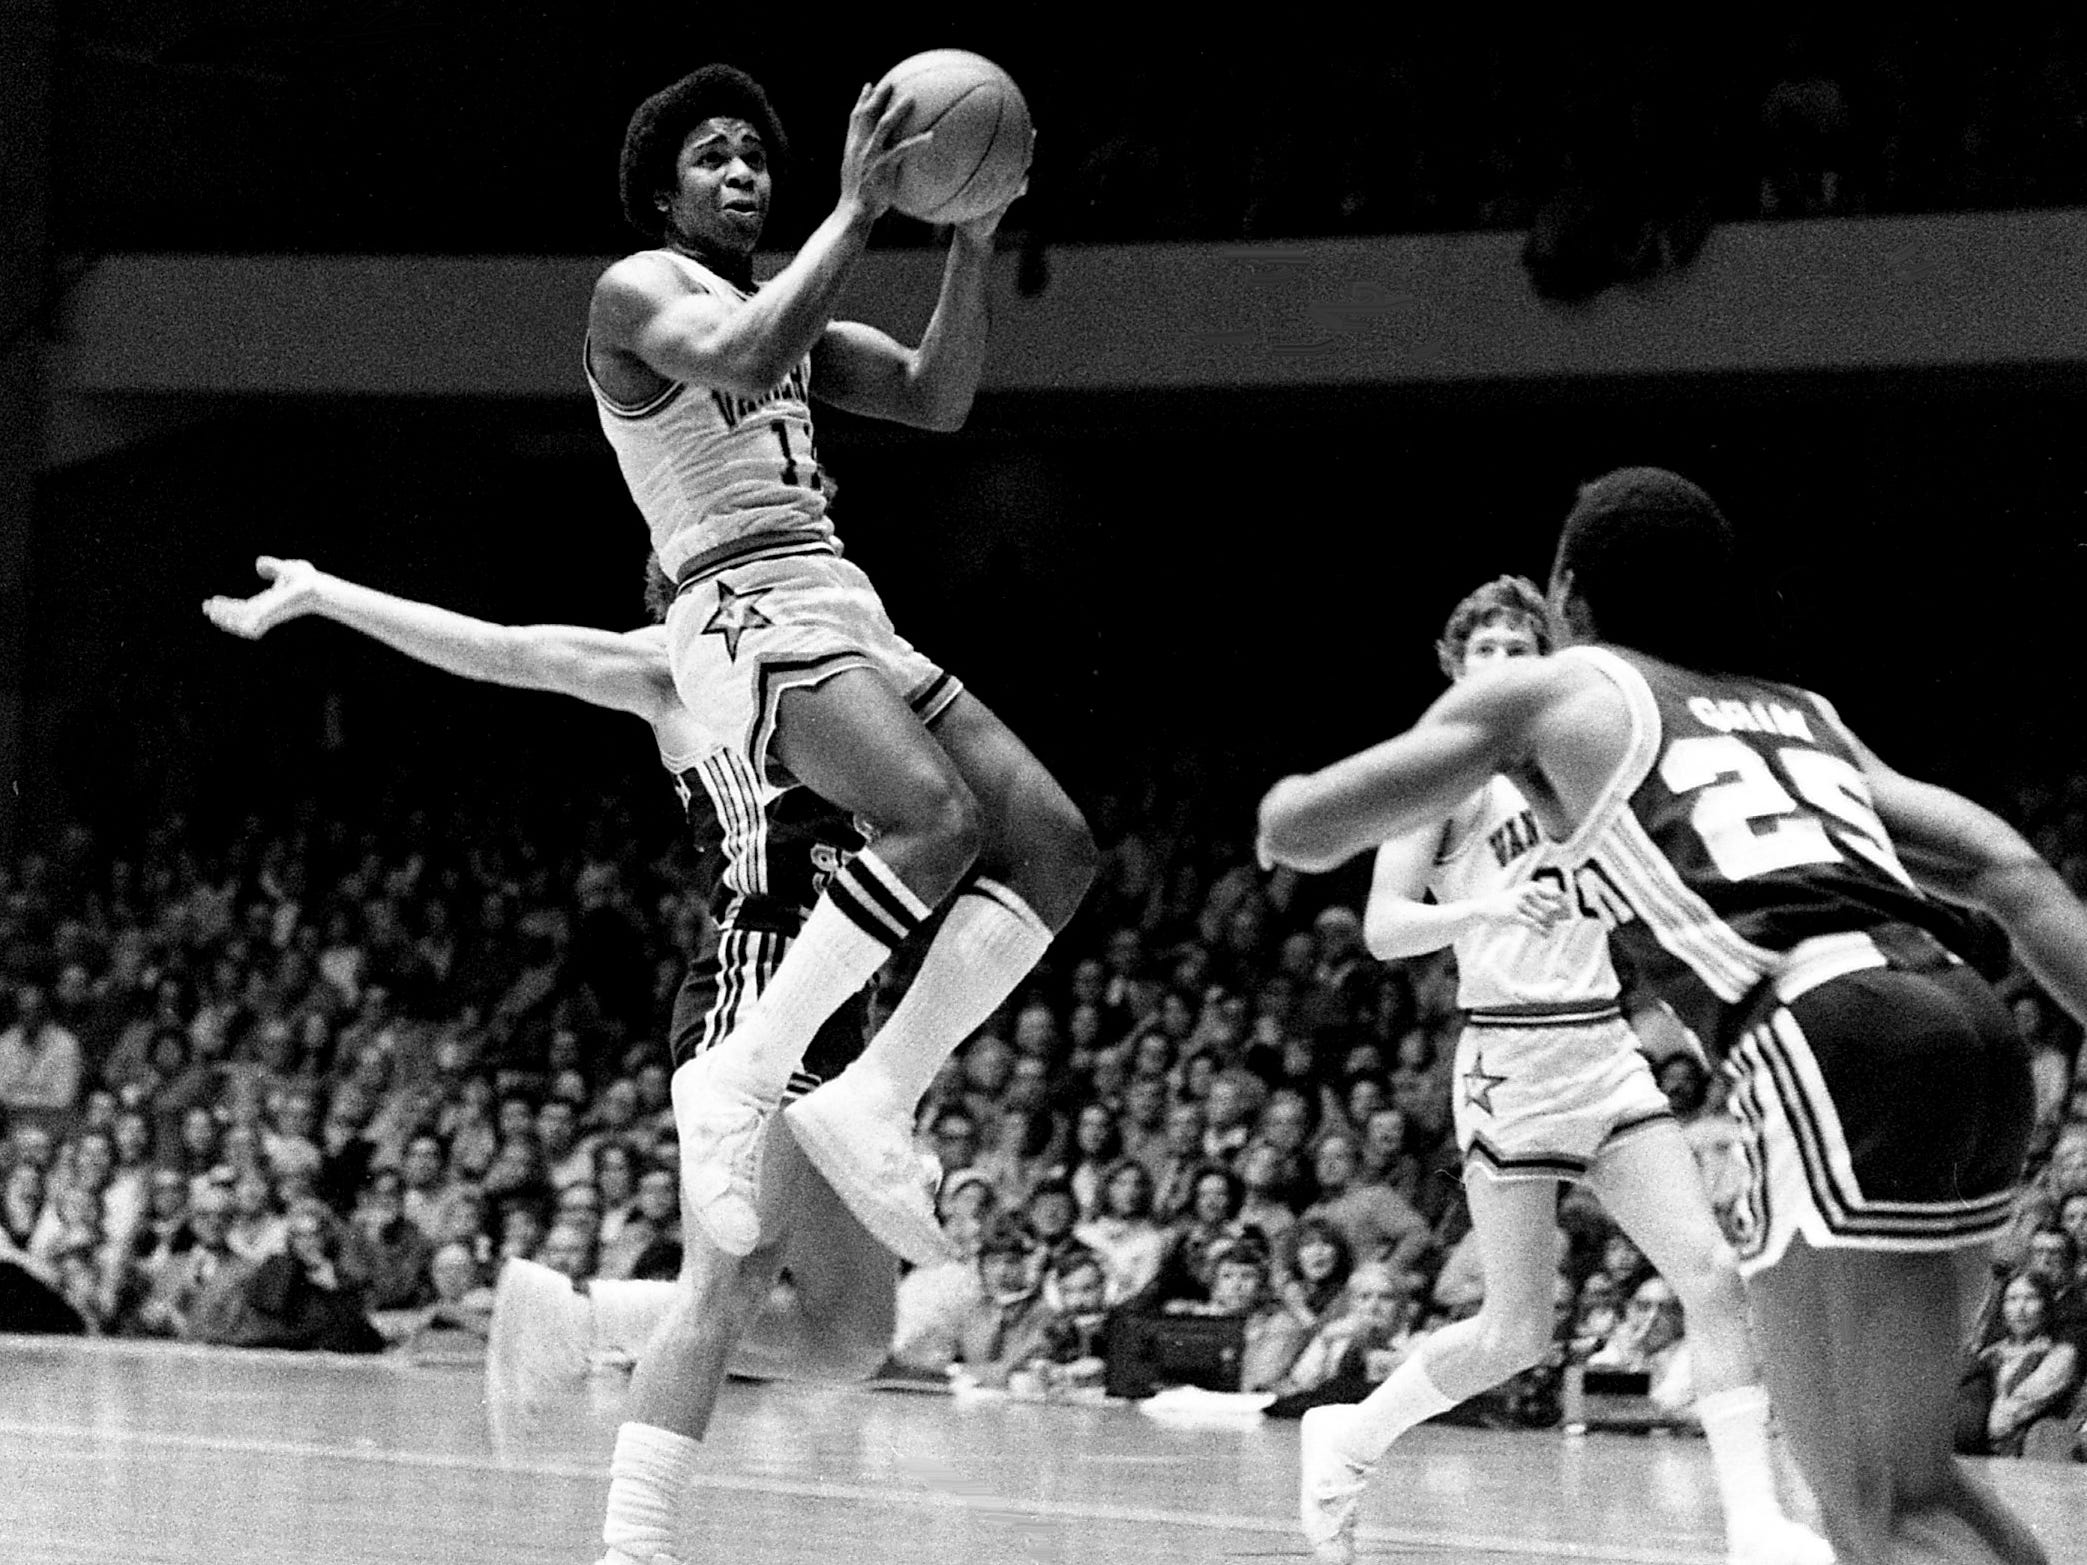 Vanderbilt guard Tommy Springer (11) pulls up for two of his 12 points in the Commodores' 70-68 victory over Mississippi State before a full house of 15,626 fans at Memorial Gym on Feb. 10, 1979.